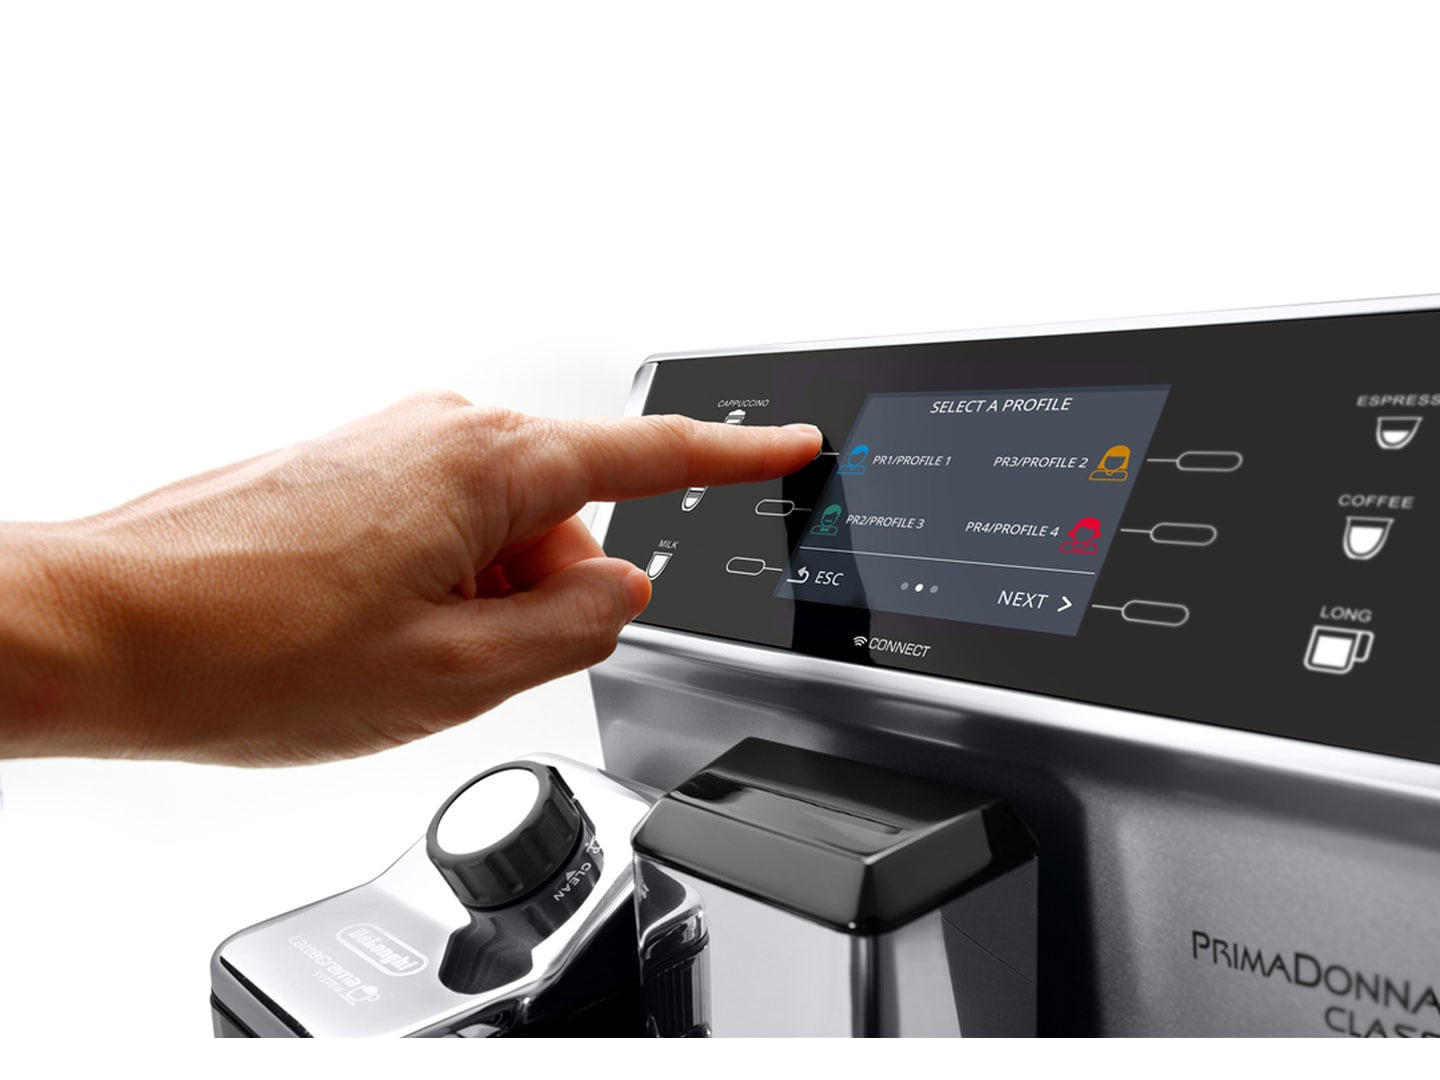 Support Primadonna Class Fully Automatic Coffee Machine